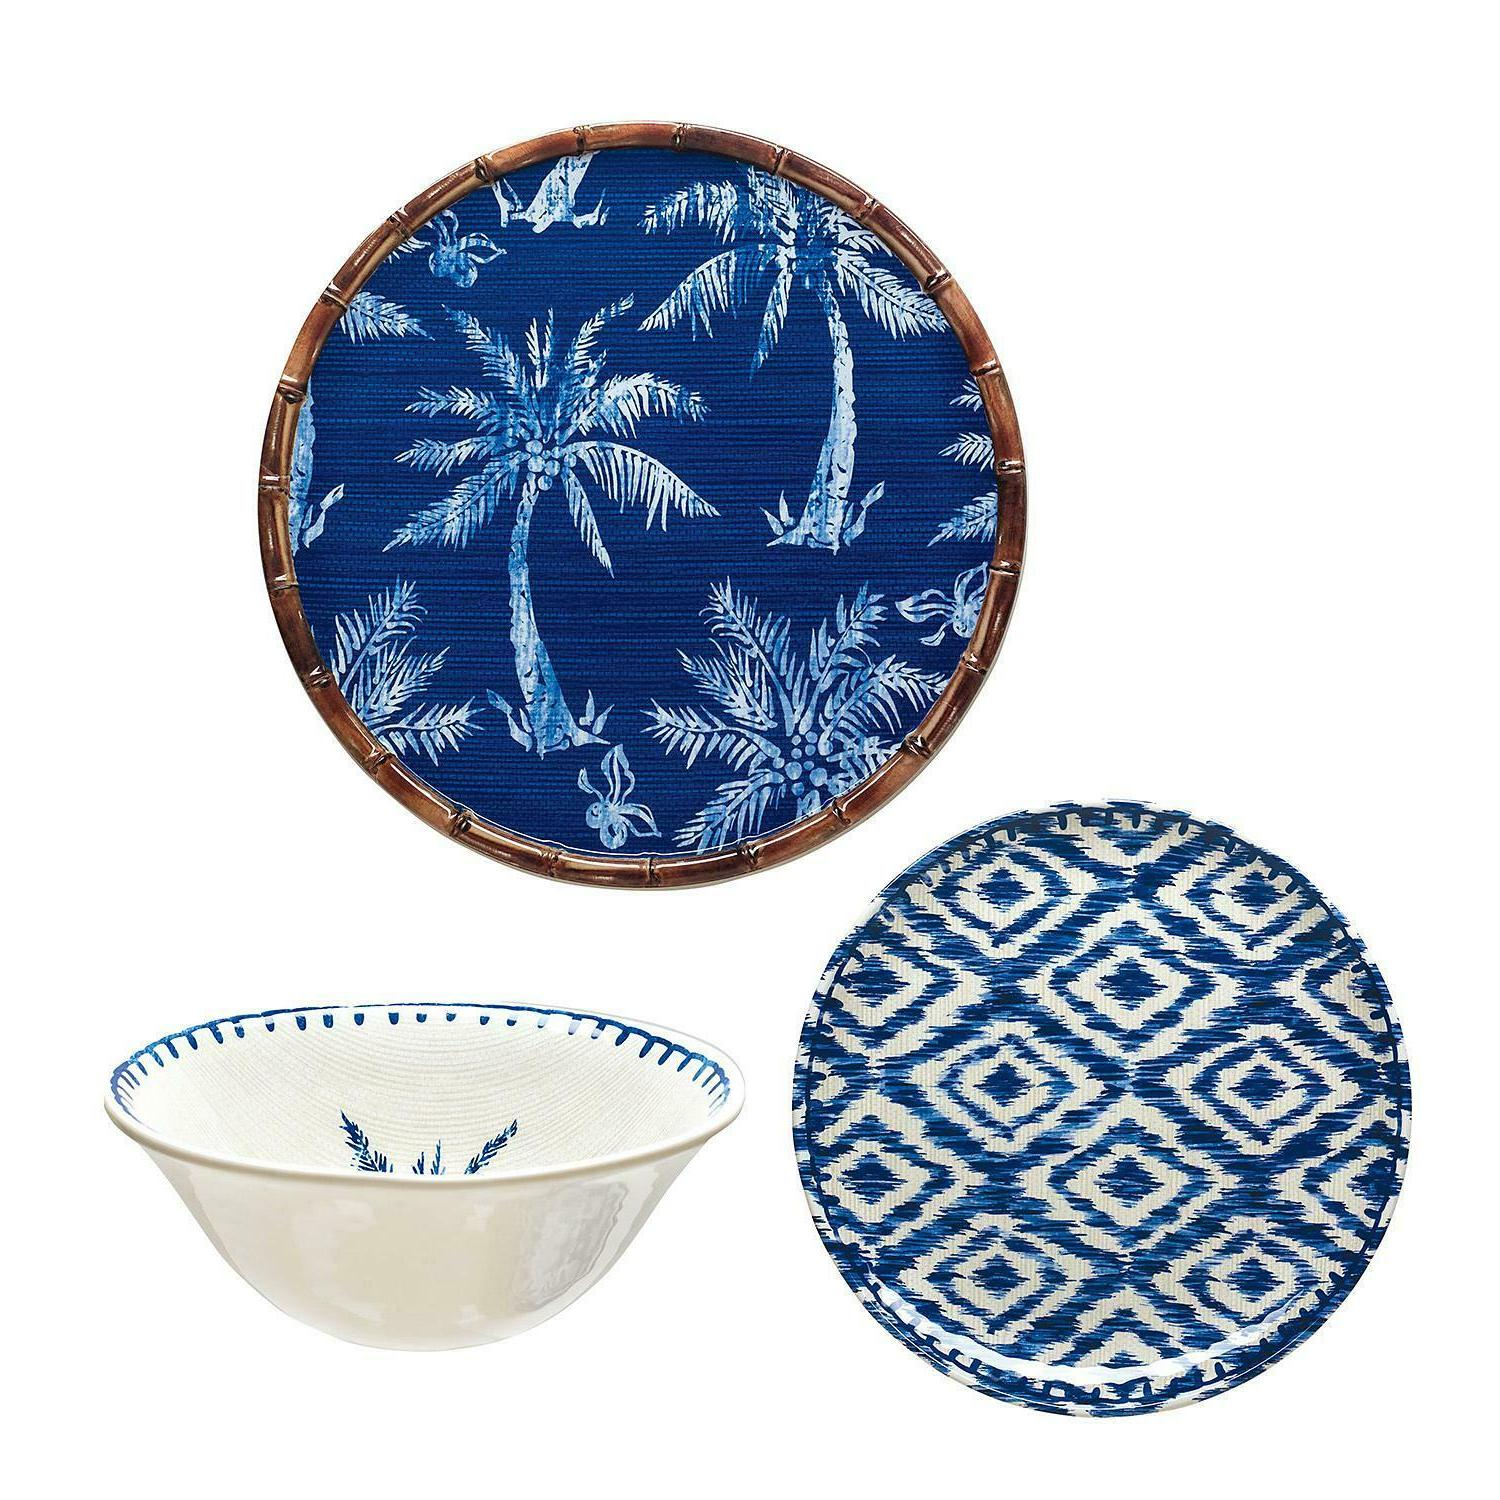 Member's Dinnerware Set Blue